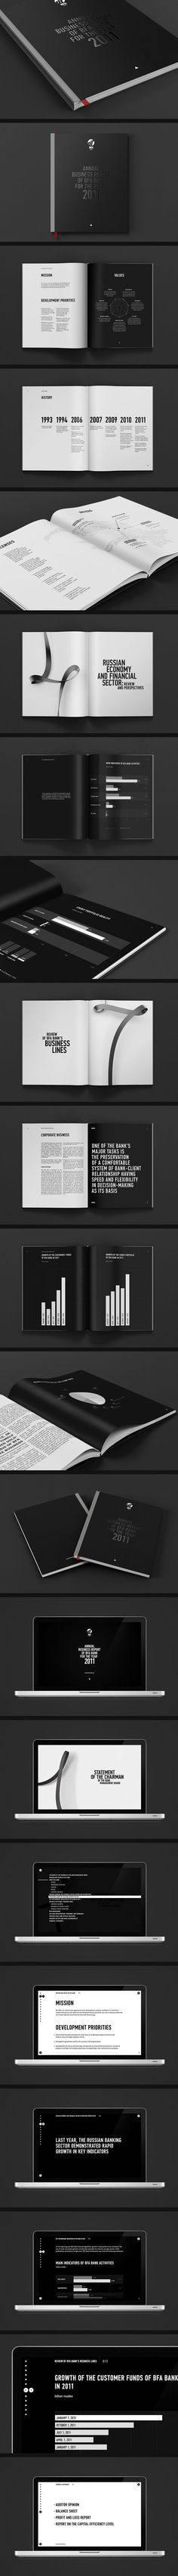 black and white #layout: